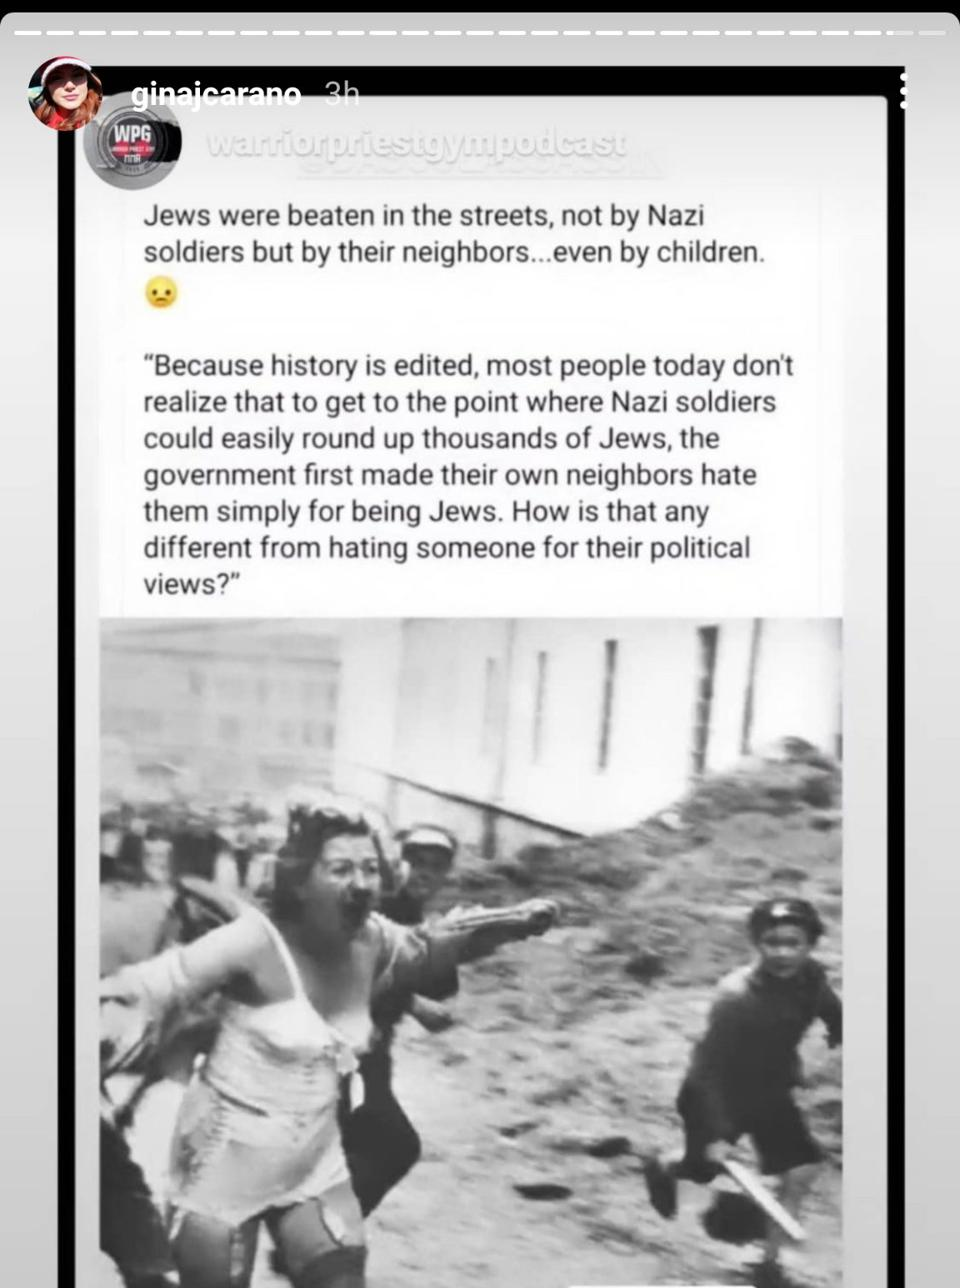 Gina Carano implied in a now deleted post on Instagram that being a Republican today is like being a Jew in Germany in the days before the Holocaust.